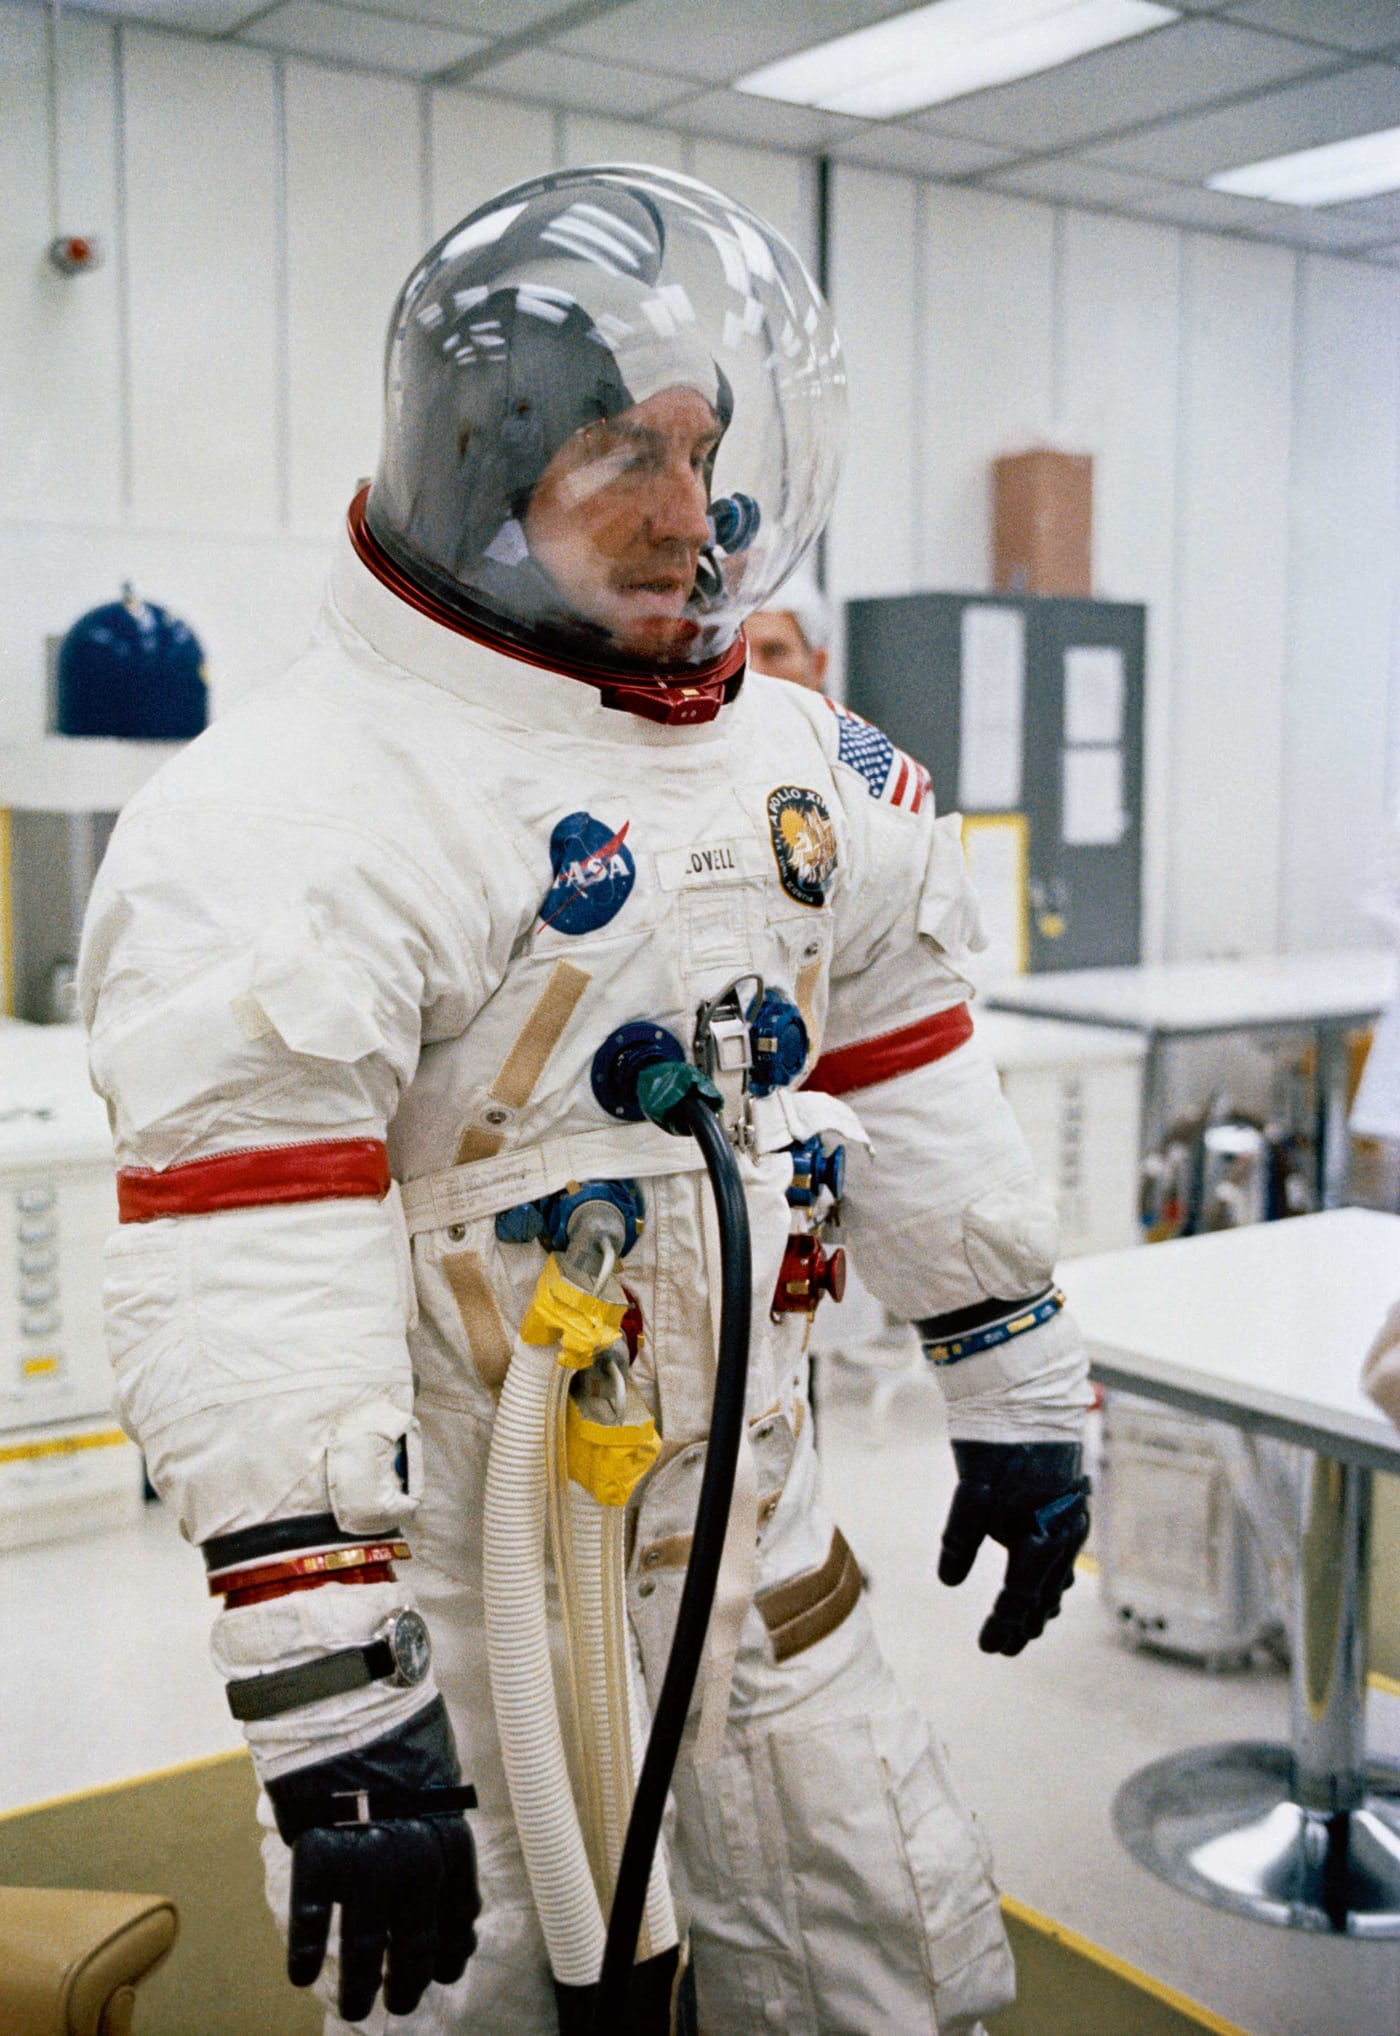 Jim Lovell, Apollo 13 Mission Commander, preparing for the launch, his Omega Speedmaster strapped around his flying suit.